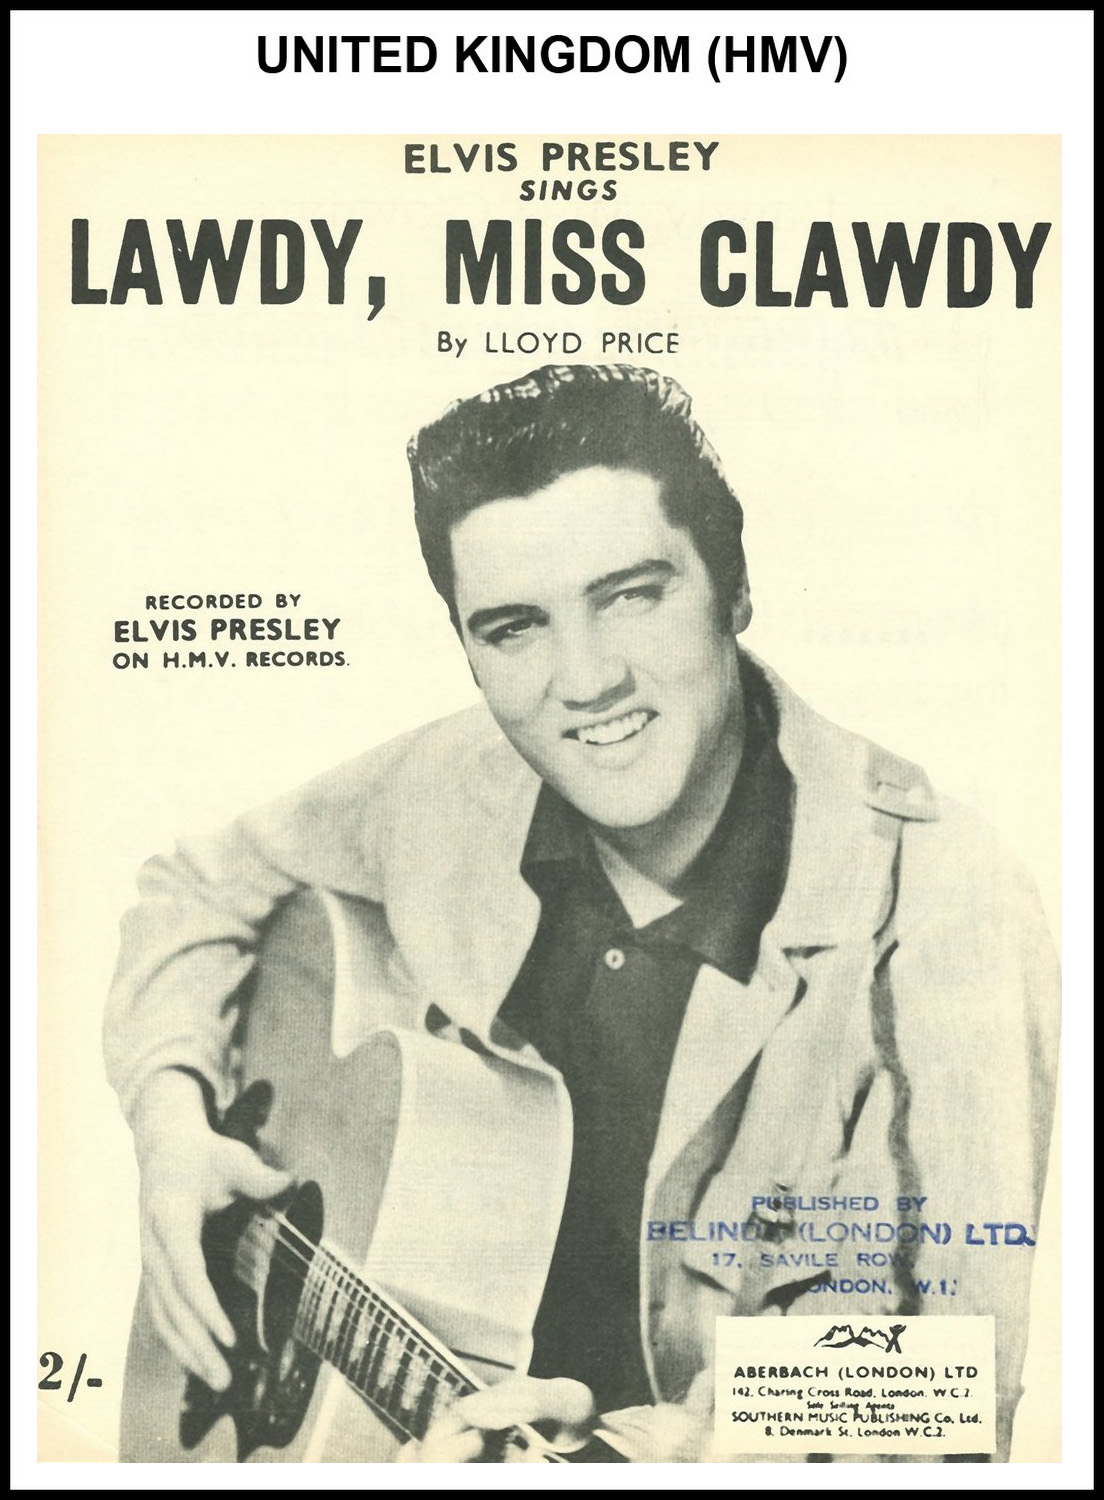 1956 - Lawdy, Miss Clawdy (UK, HMV) (CHRIS GILES COLLECTION)